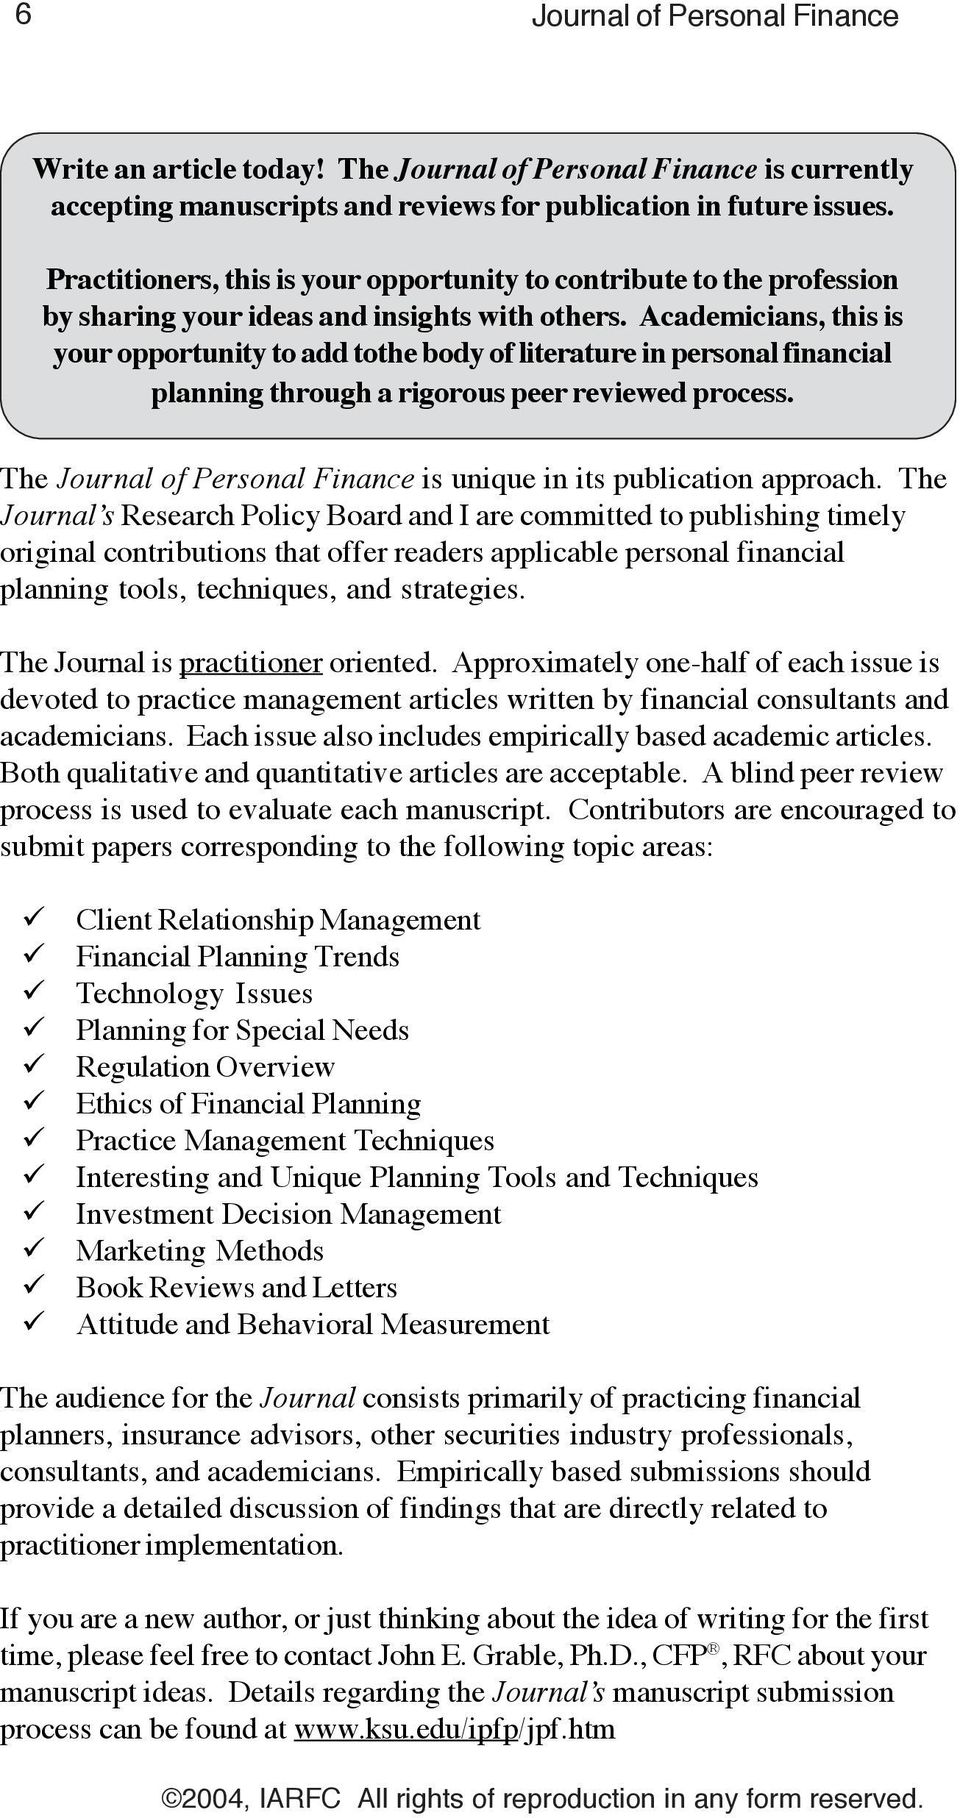 Foundations In Personal Finance Chapter 8 Test Answer Key